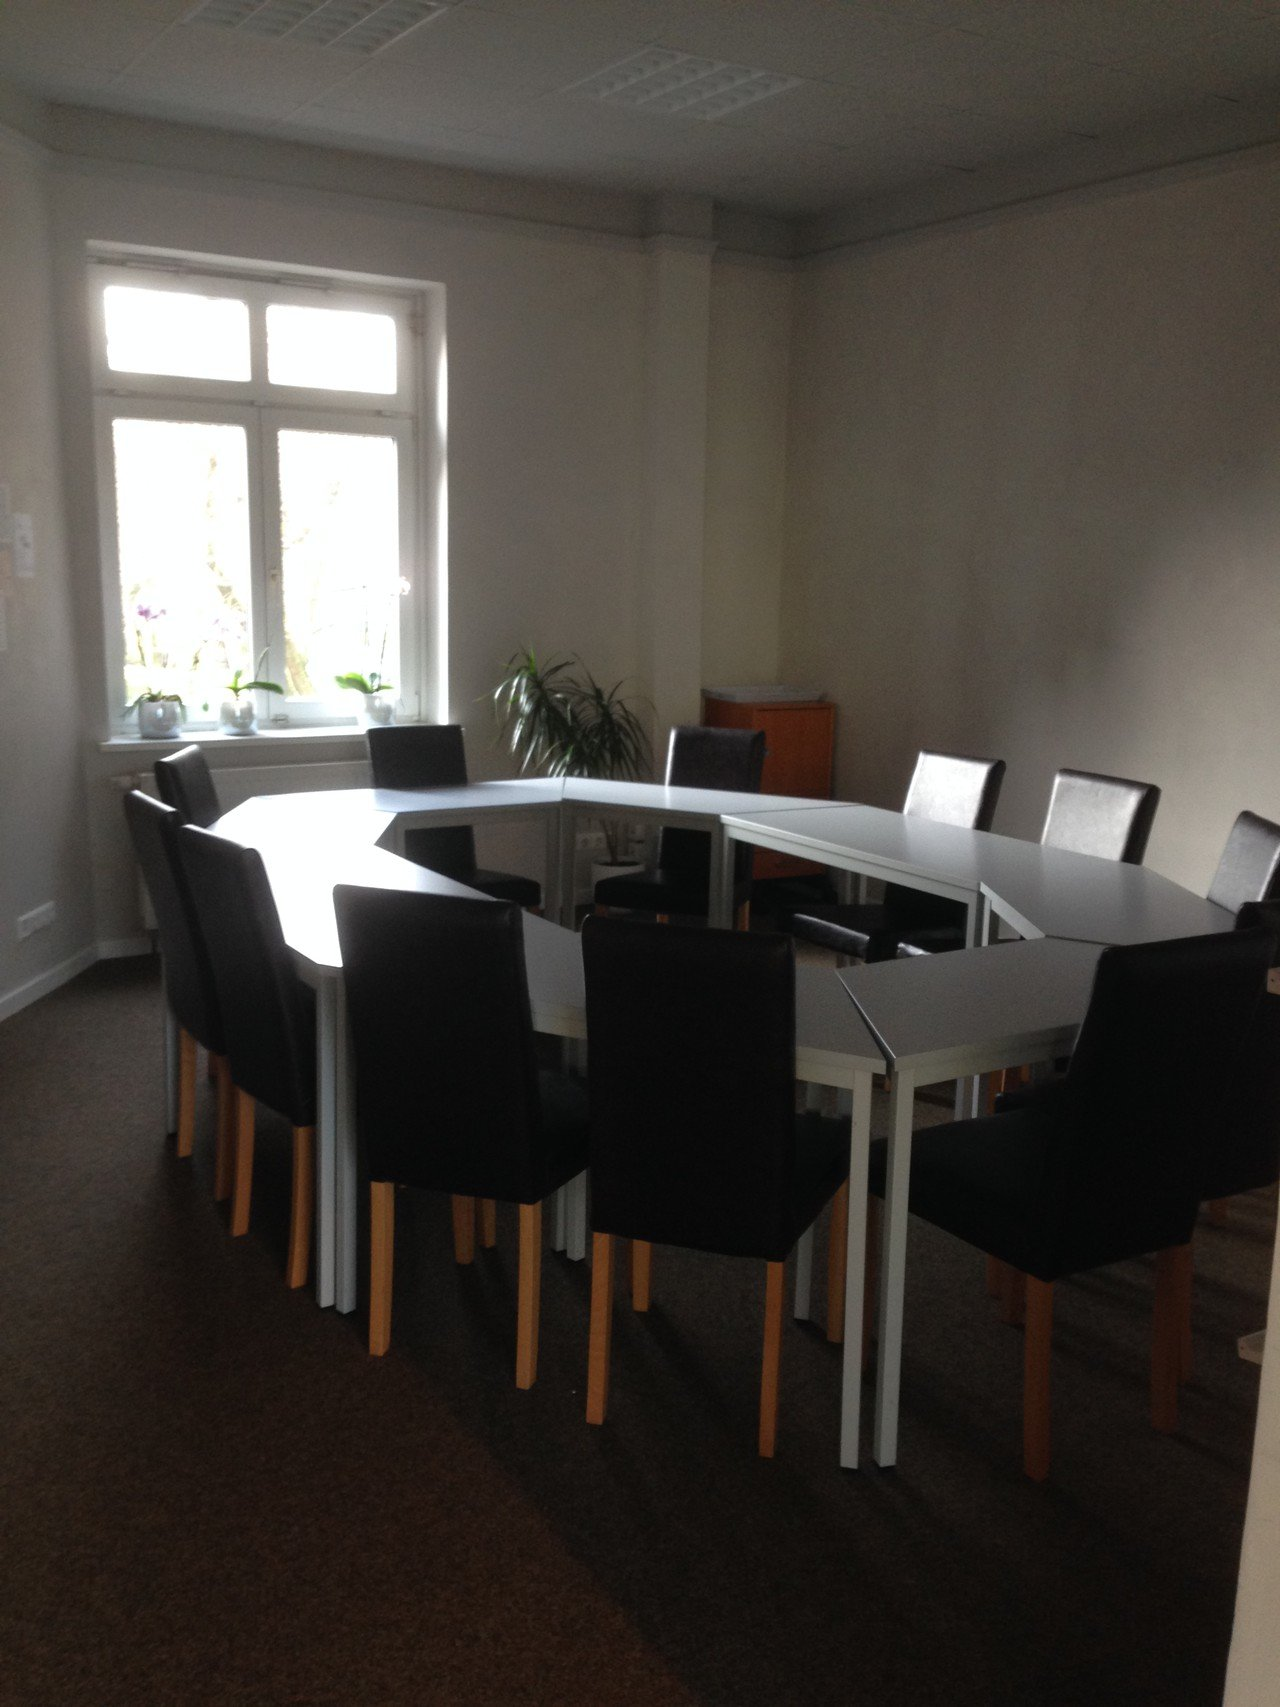 Hamburg conference rooms Coworking space interact! languages connect image 0